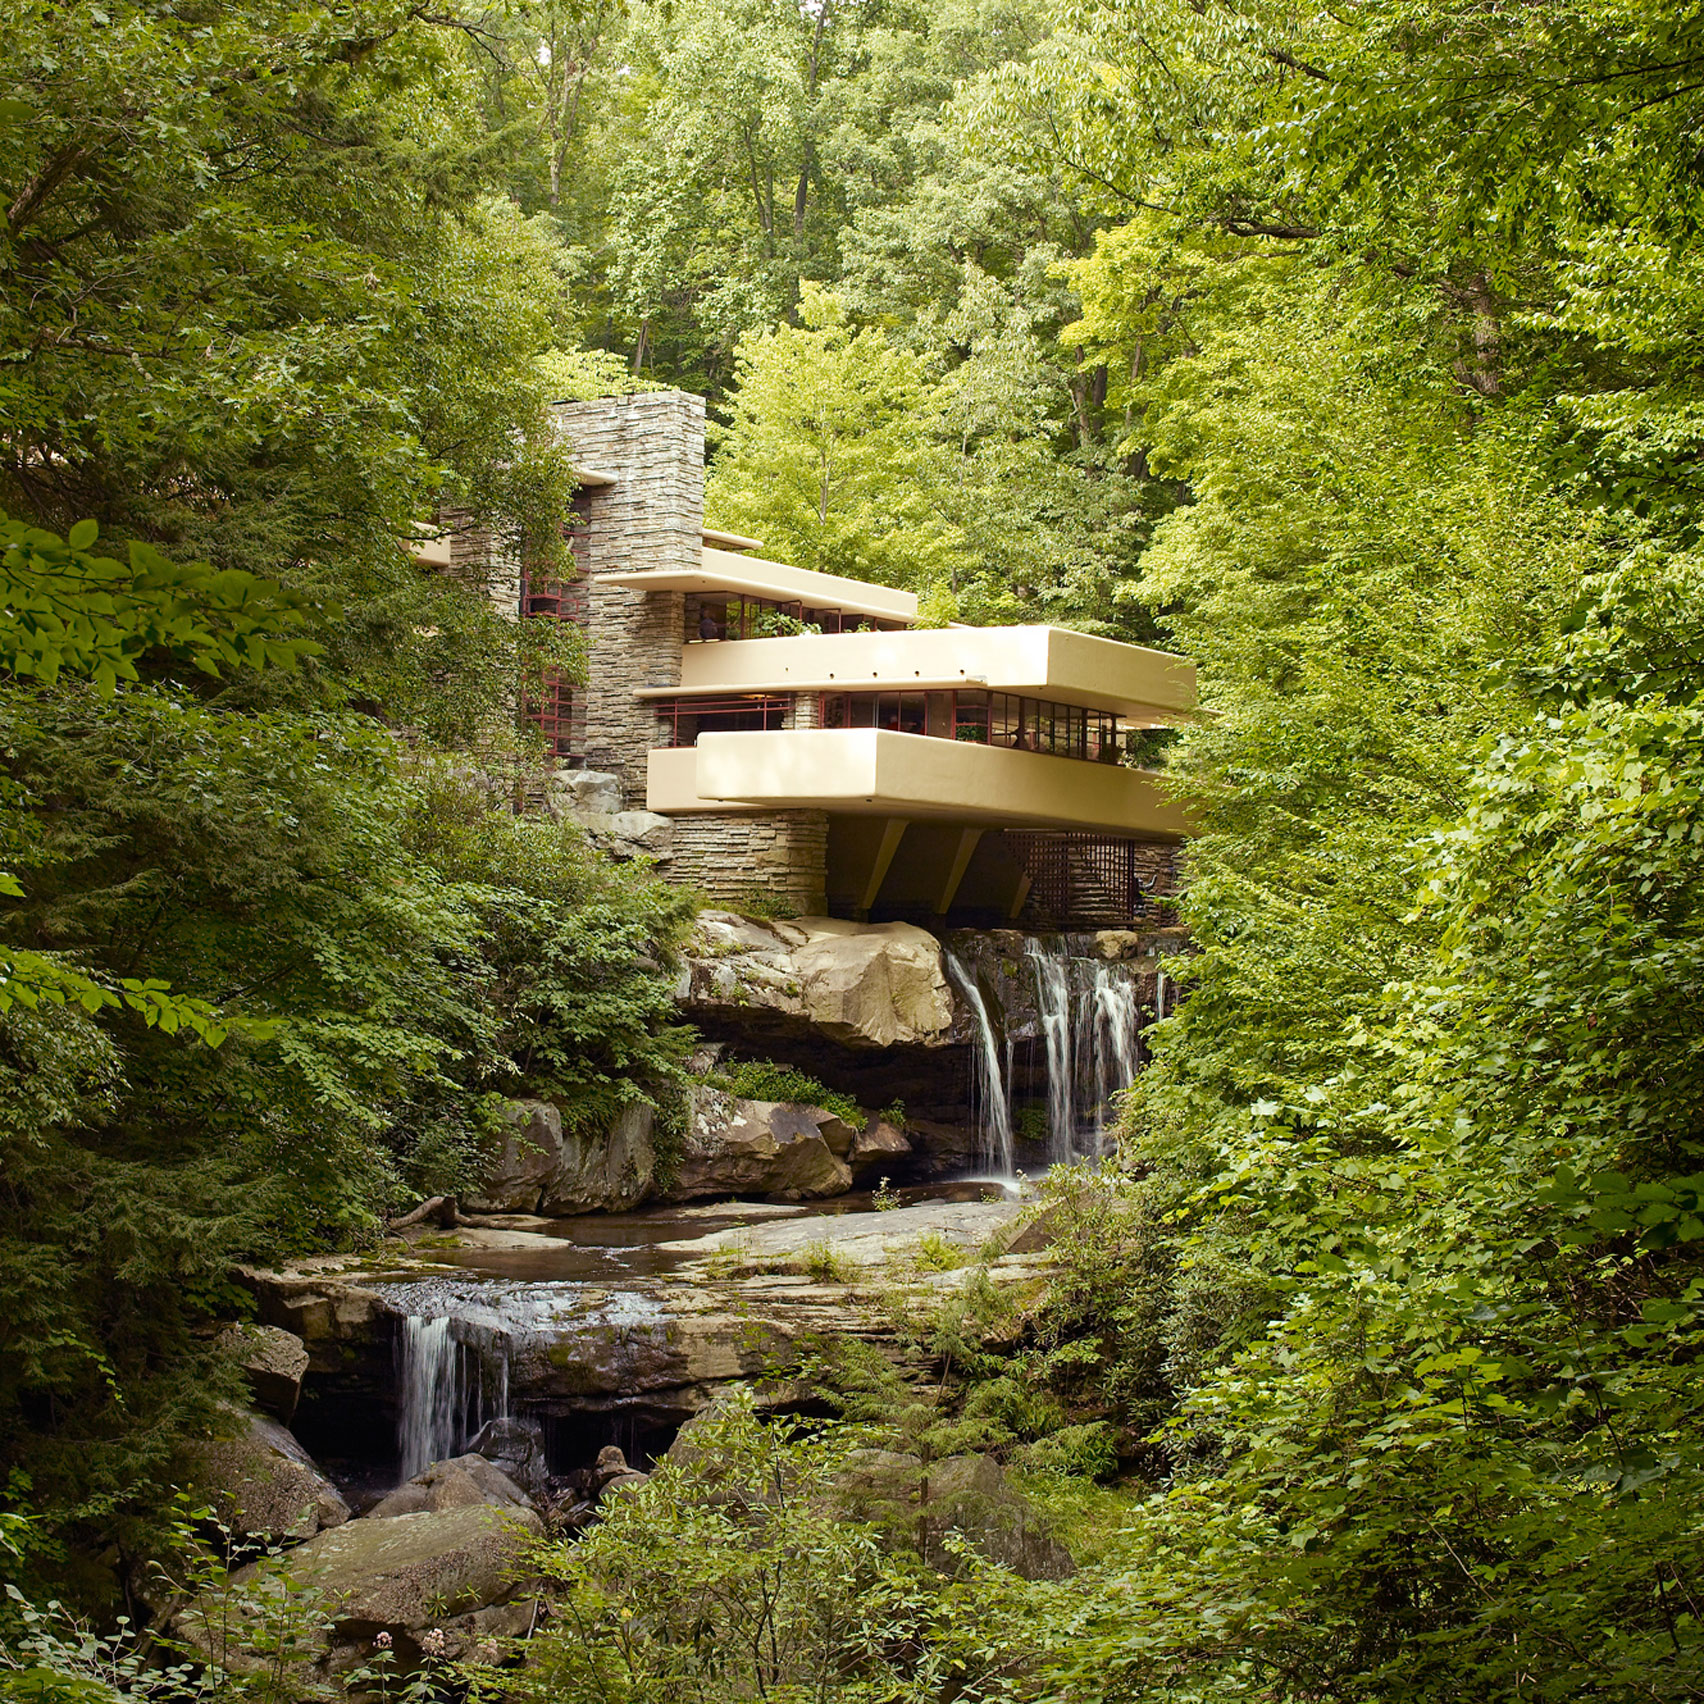 Frank Lloyd Wright sites offer virtual tours during pandemic